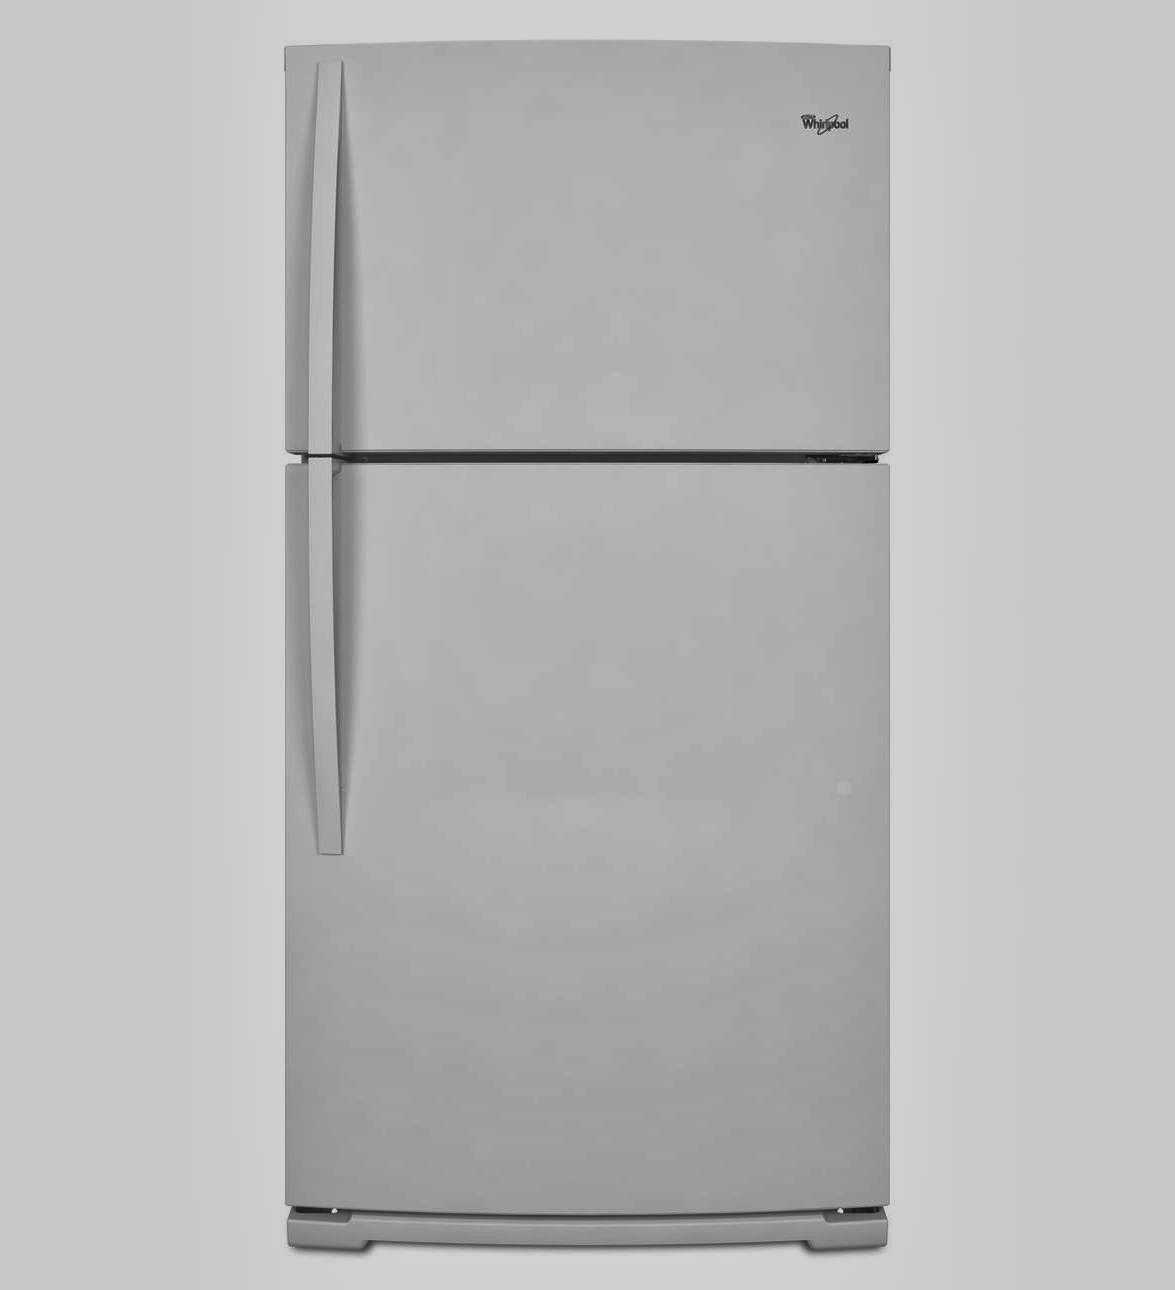 French door or side by side - Whirlpool Refrigerator Brand Wrt771reyw Top Freezer Refrigerator